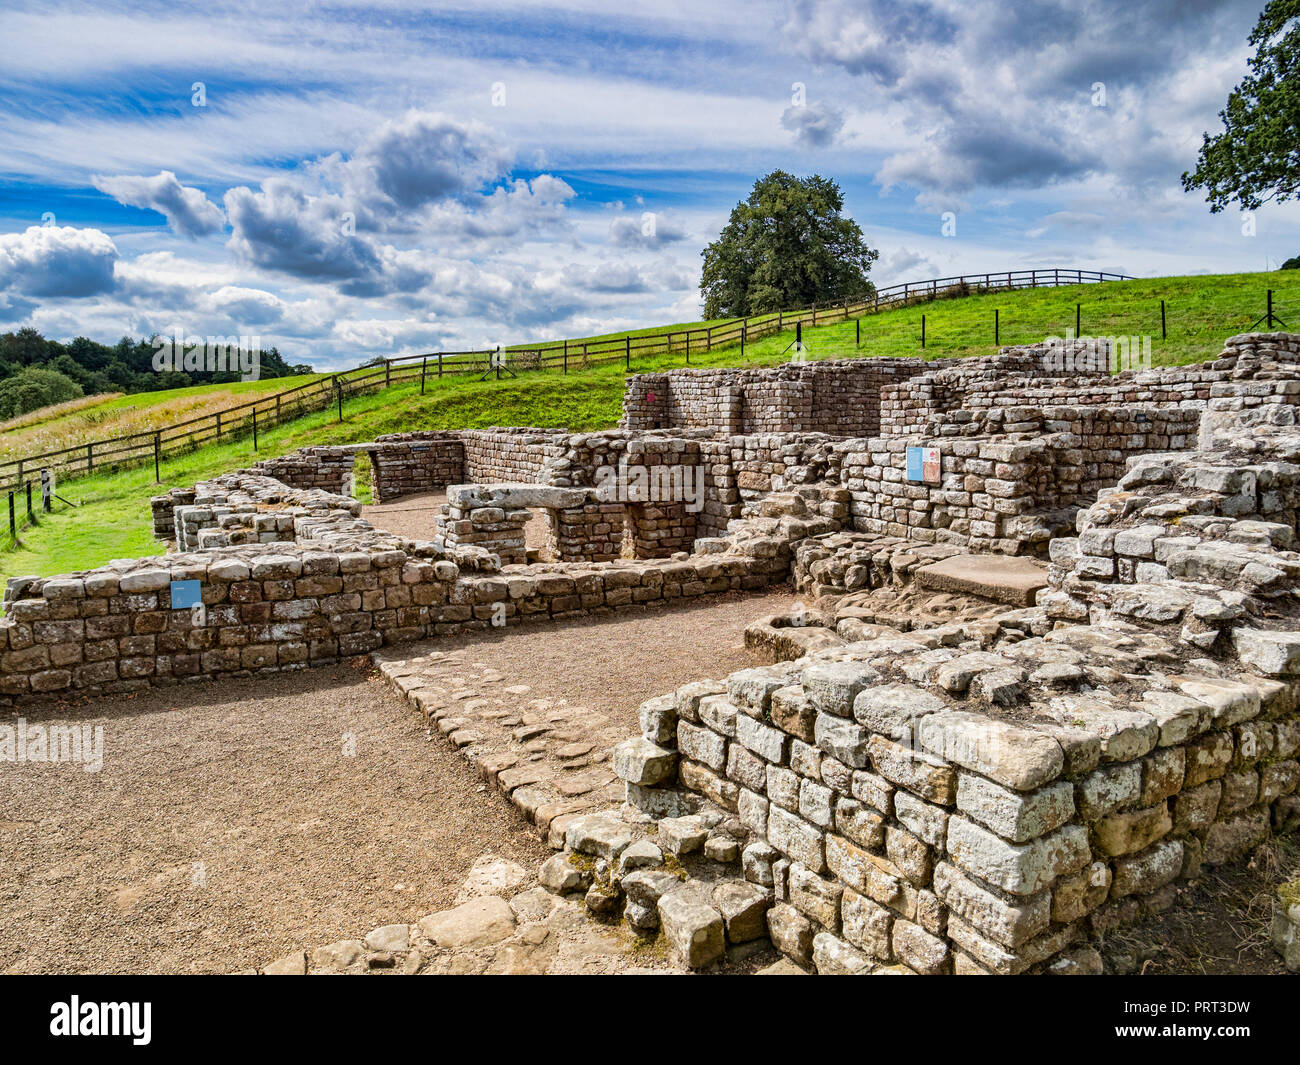 11 August 2018: Hadrian's Wall, Northumberland, UK - The best preserved Roman bath house in the UK at Chesters Roman Fort. Stock Photo